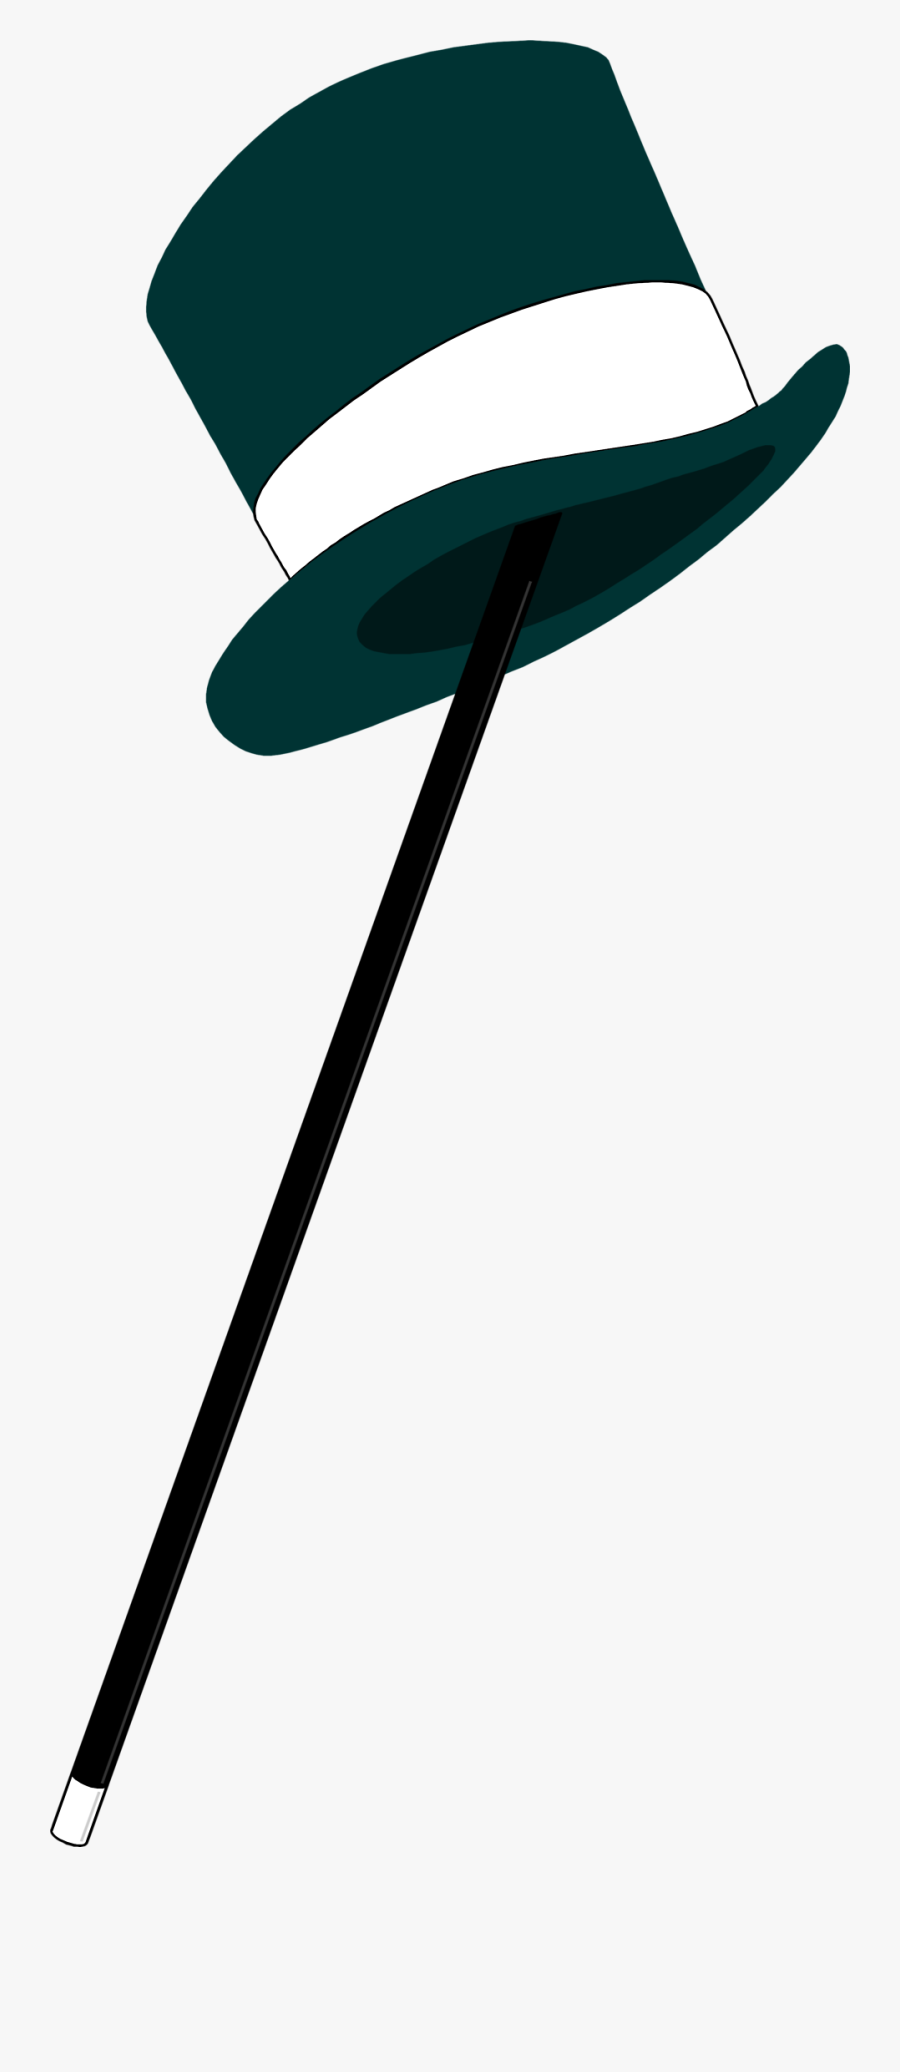 Top Hat Free Stock Photo A Top Hat And Cane Clip Art - Top Hat And Cane, Transparent Clipart